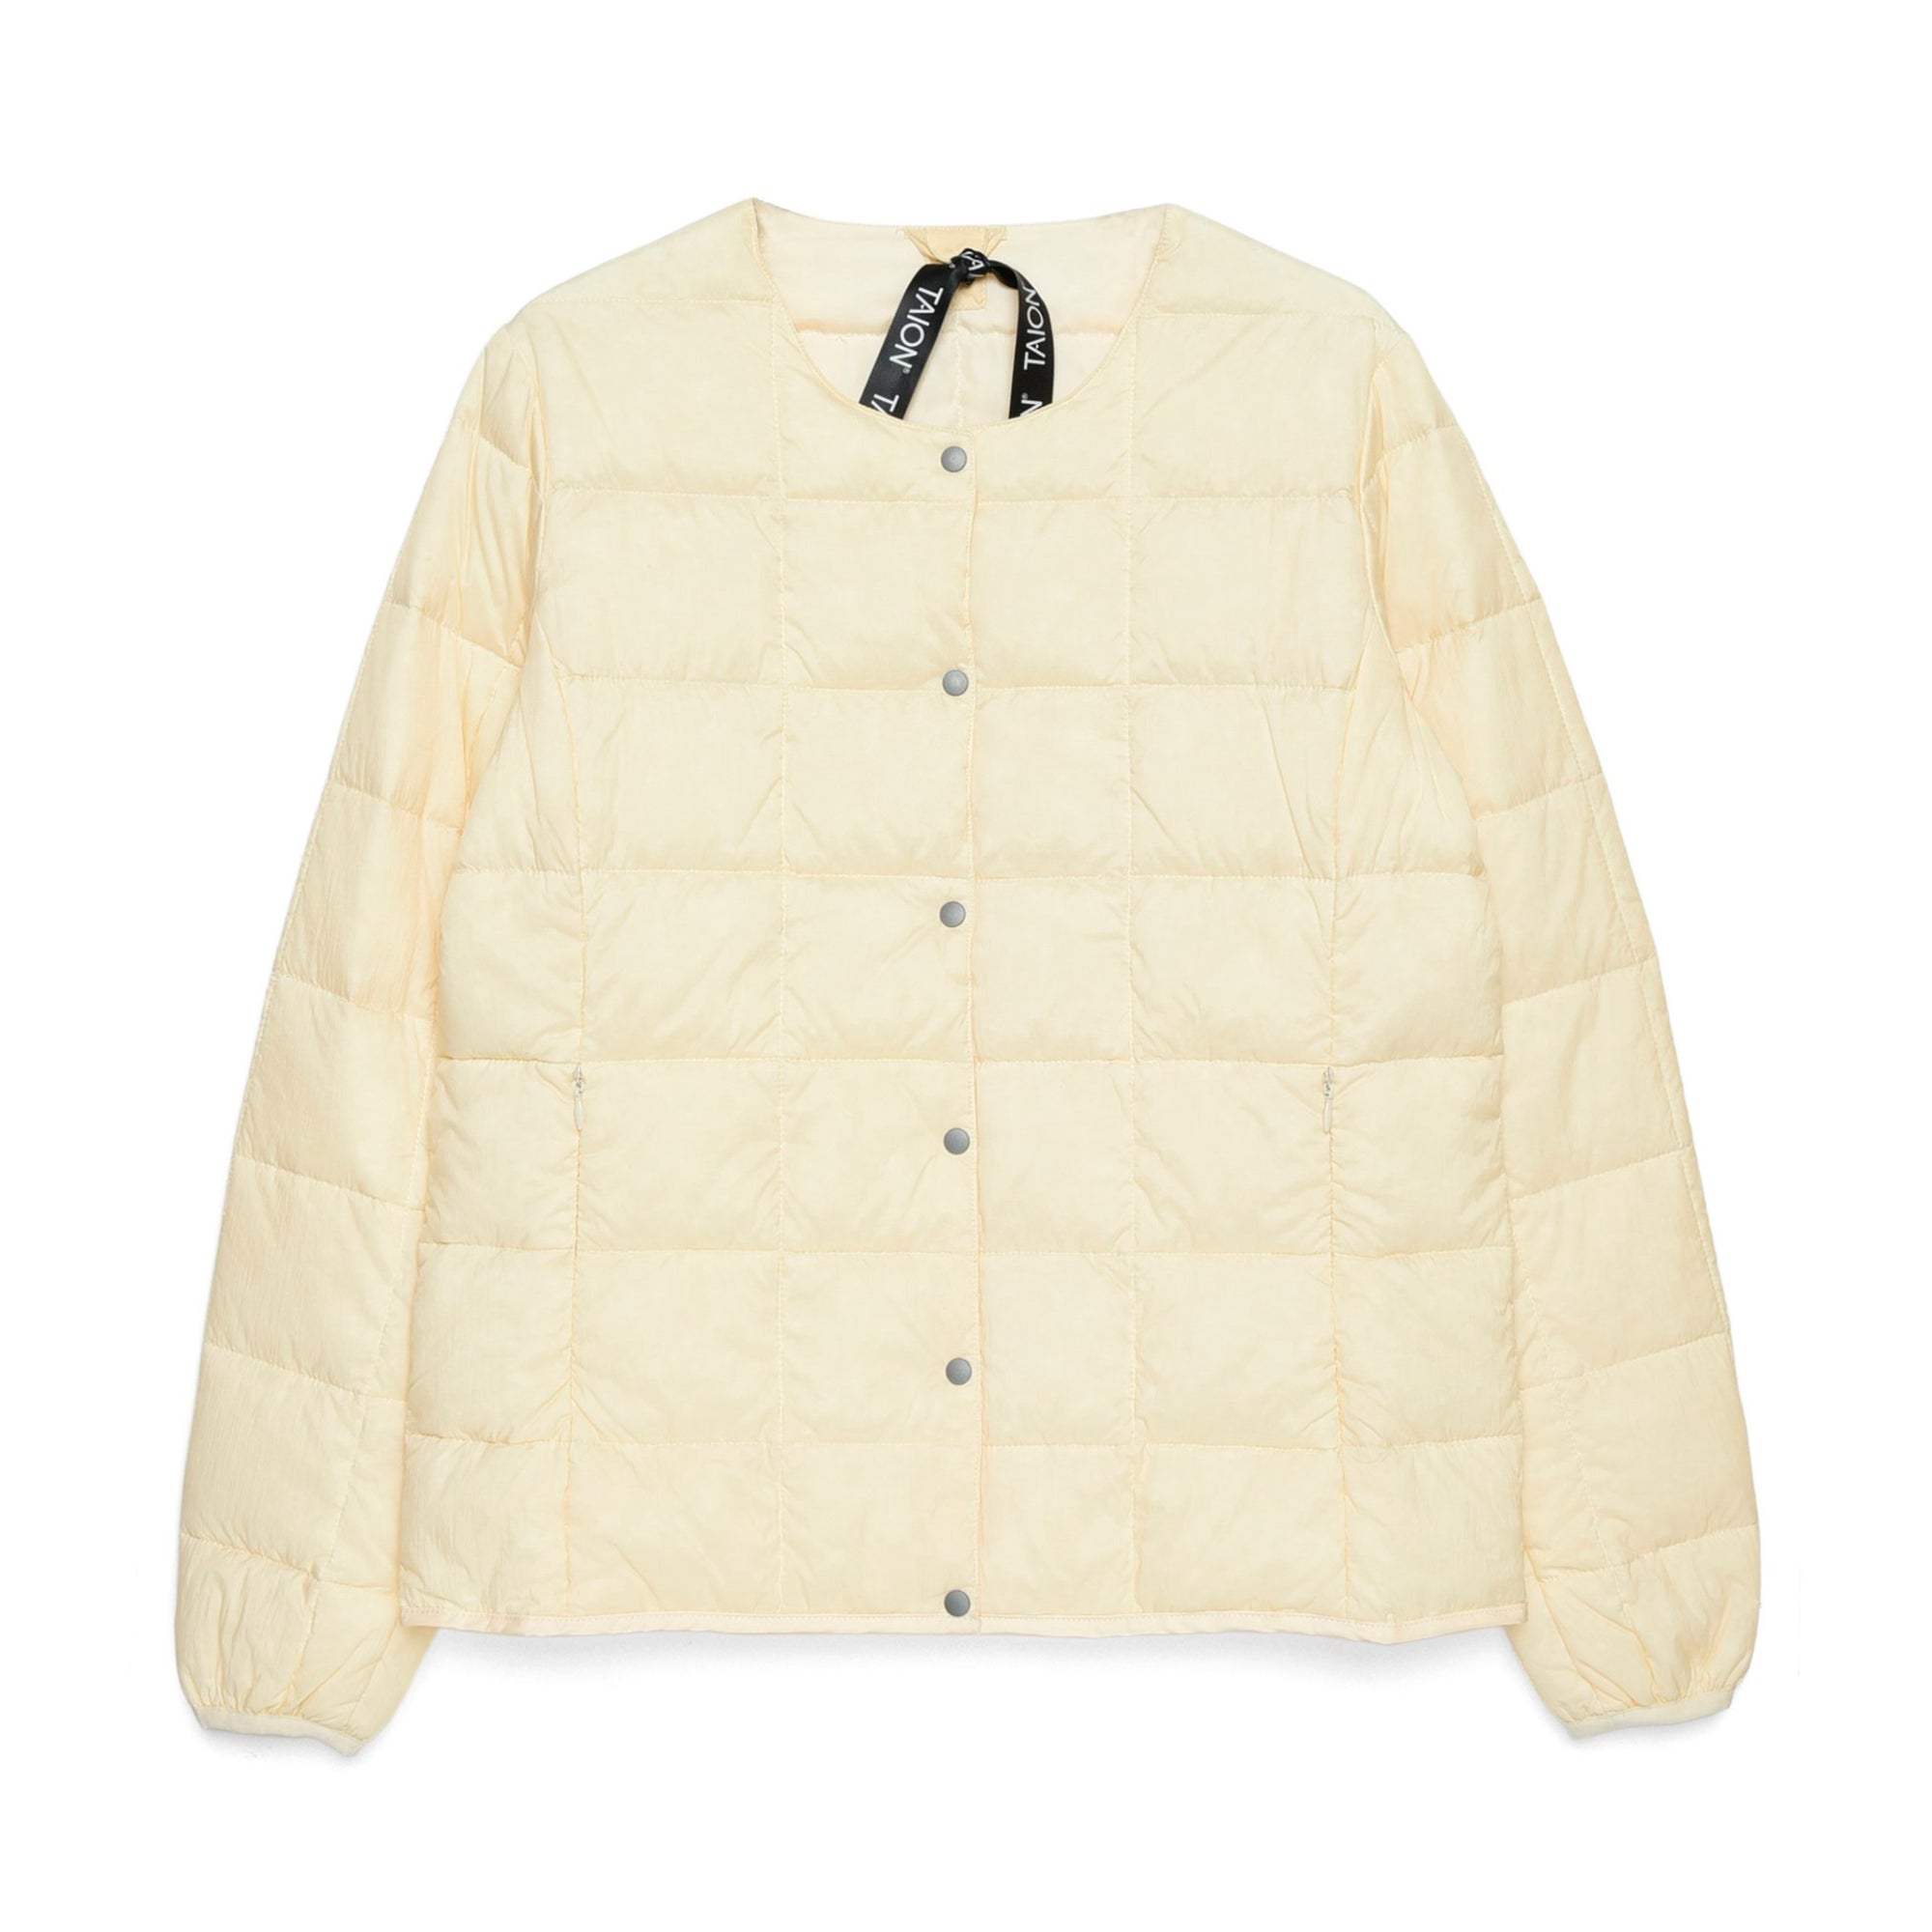 Taion Womens Crew Neck Button Down Jacket: Off White - The Union Project